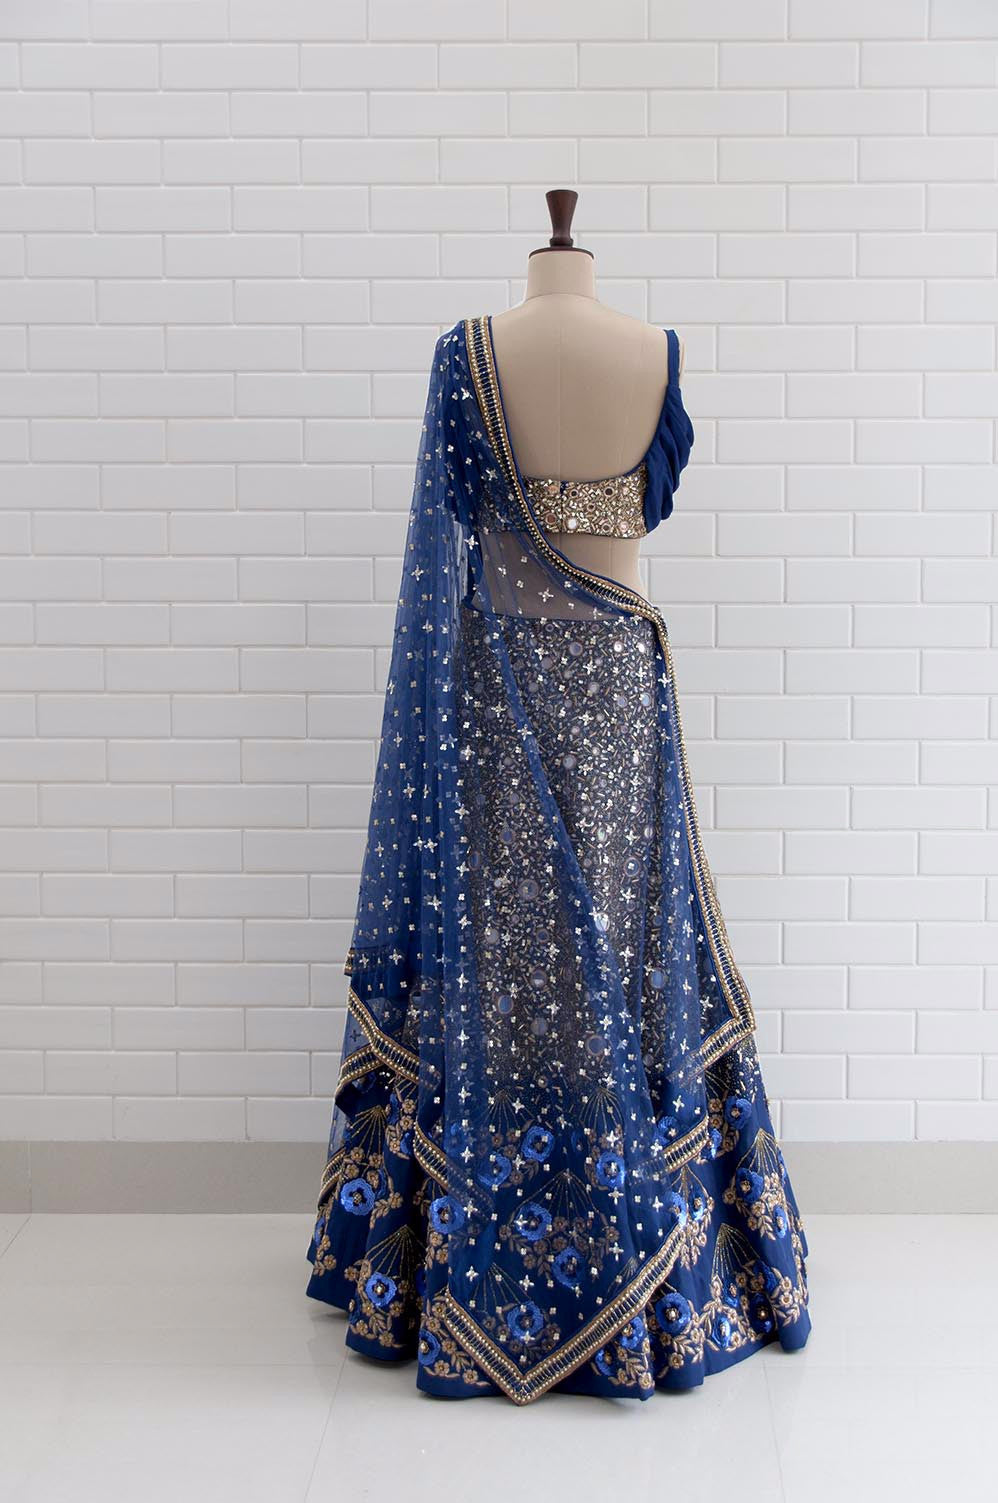 125973f9da0294 ALESSANDRA : Midnight Blue Drape Sleeves with Jaal embroidery Blouse and  Lehenga